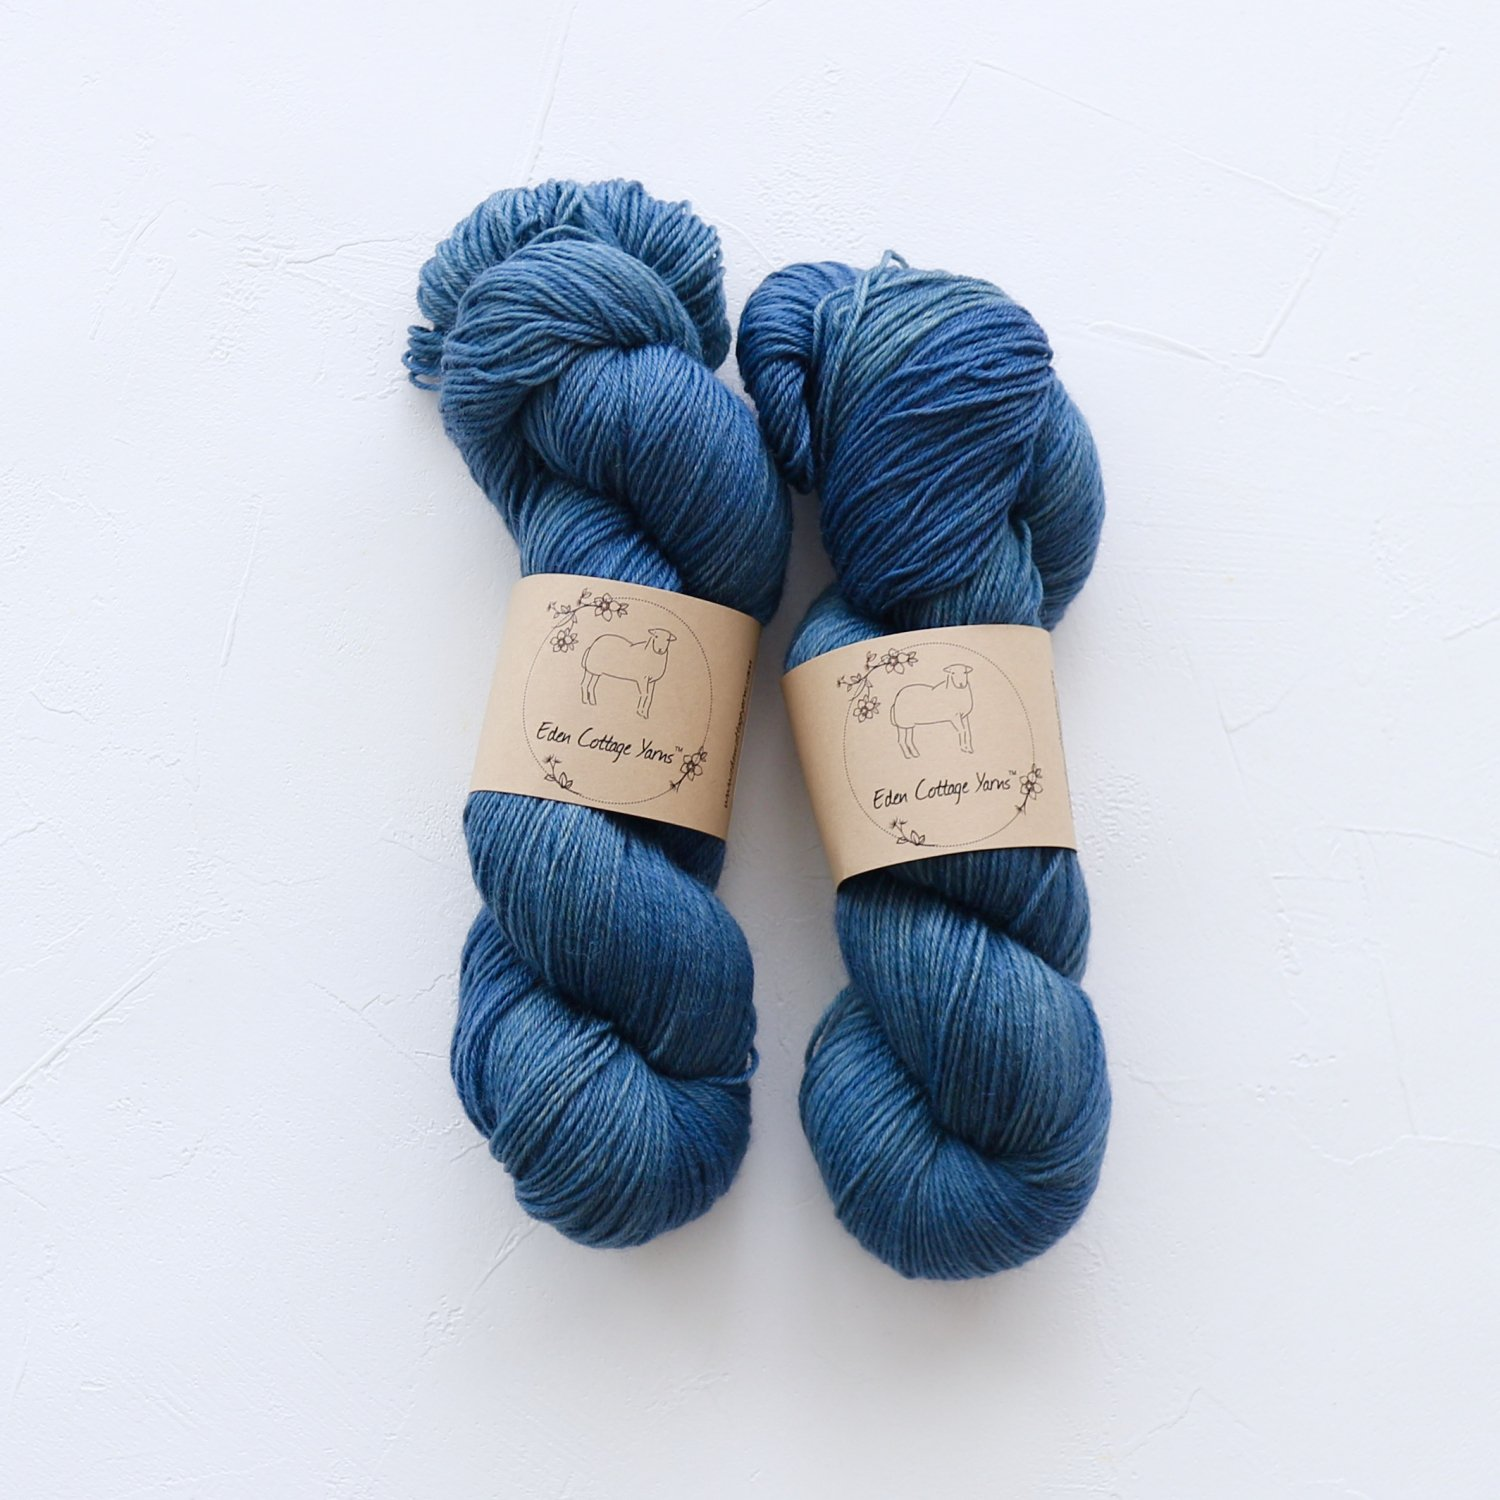 【Eden Cottage Yarns】<br>Tempo 4ply<br>Tide